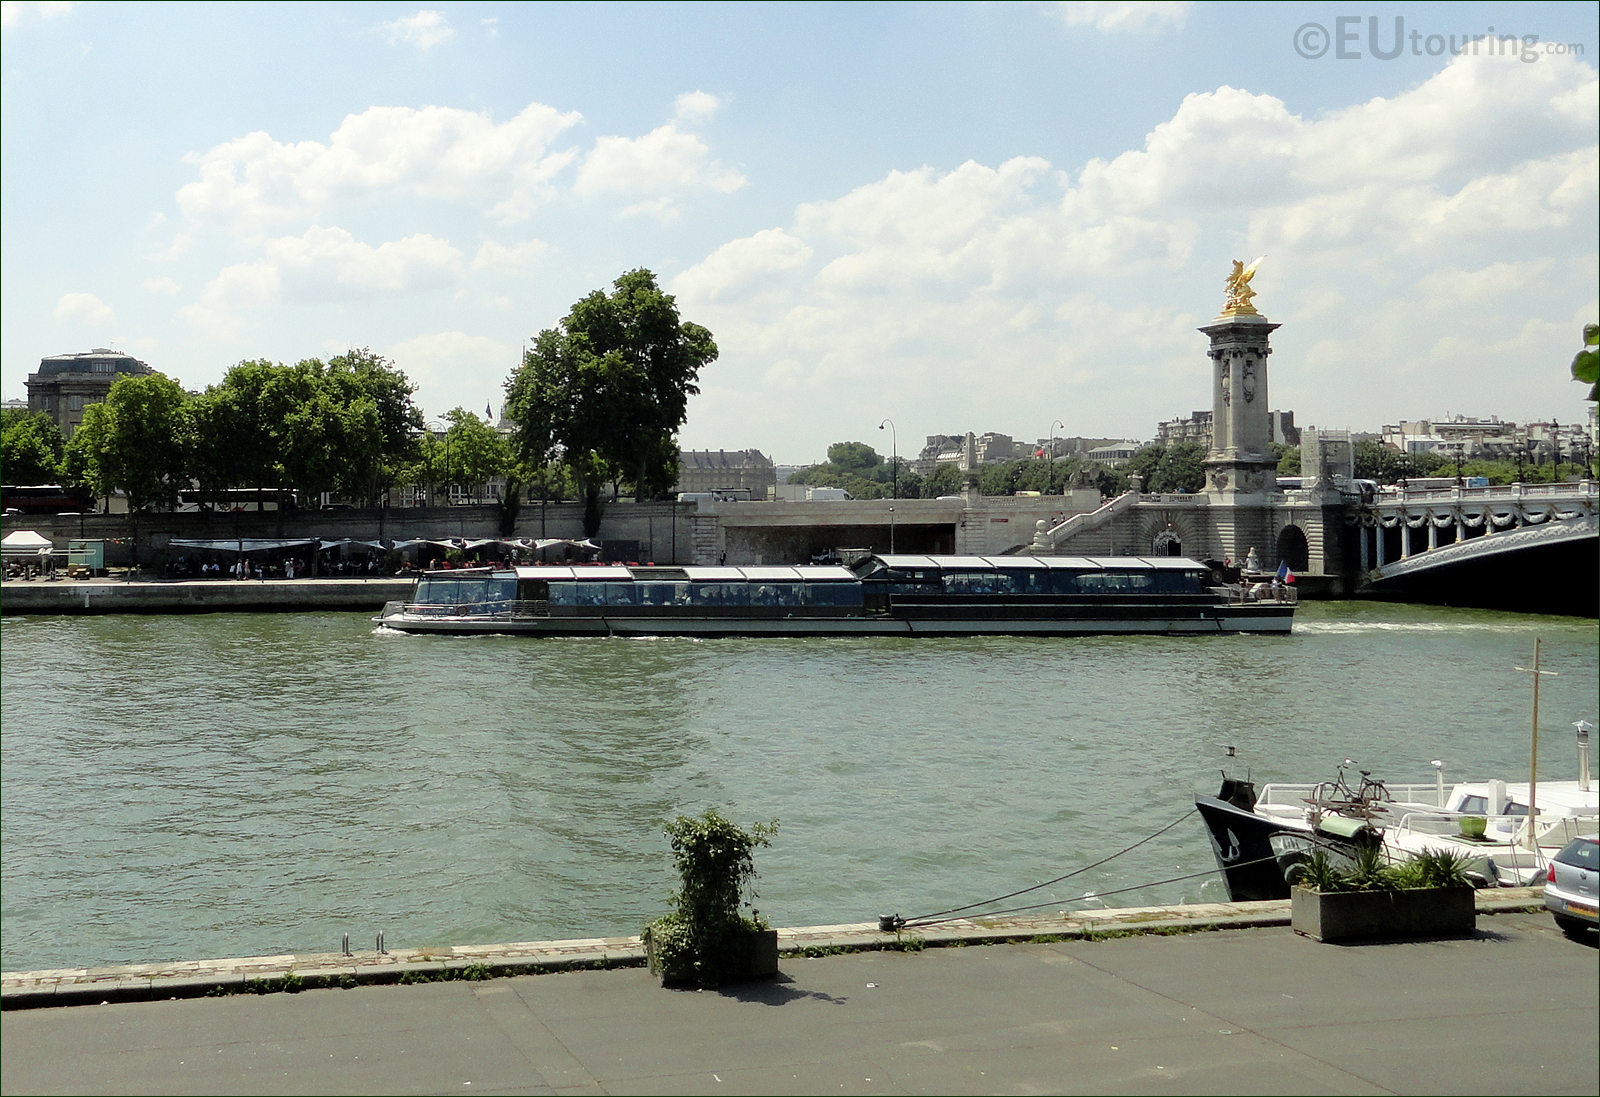 photo images of bateaux parisiens cruise boats in paris image 19. Black Bedroom Furniture Sets. Home Design Ideas